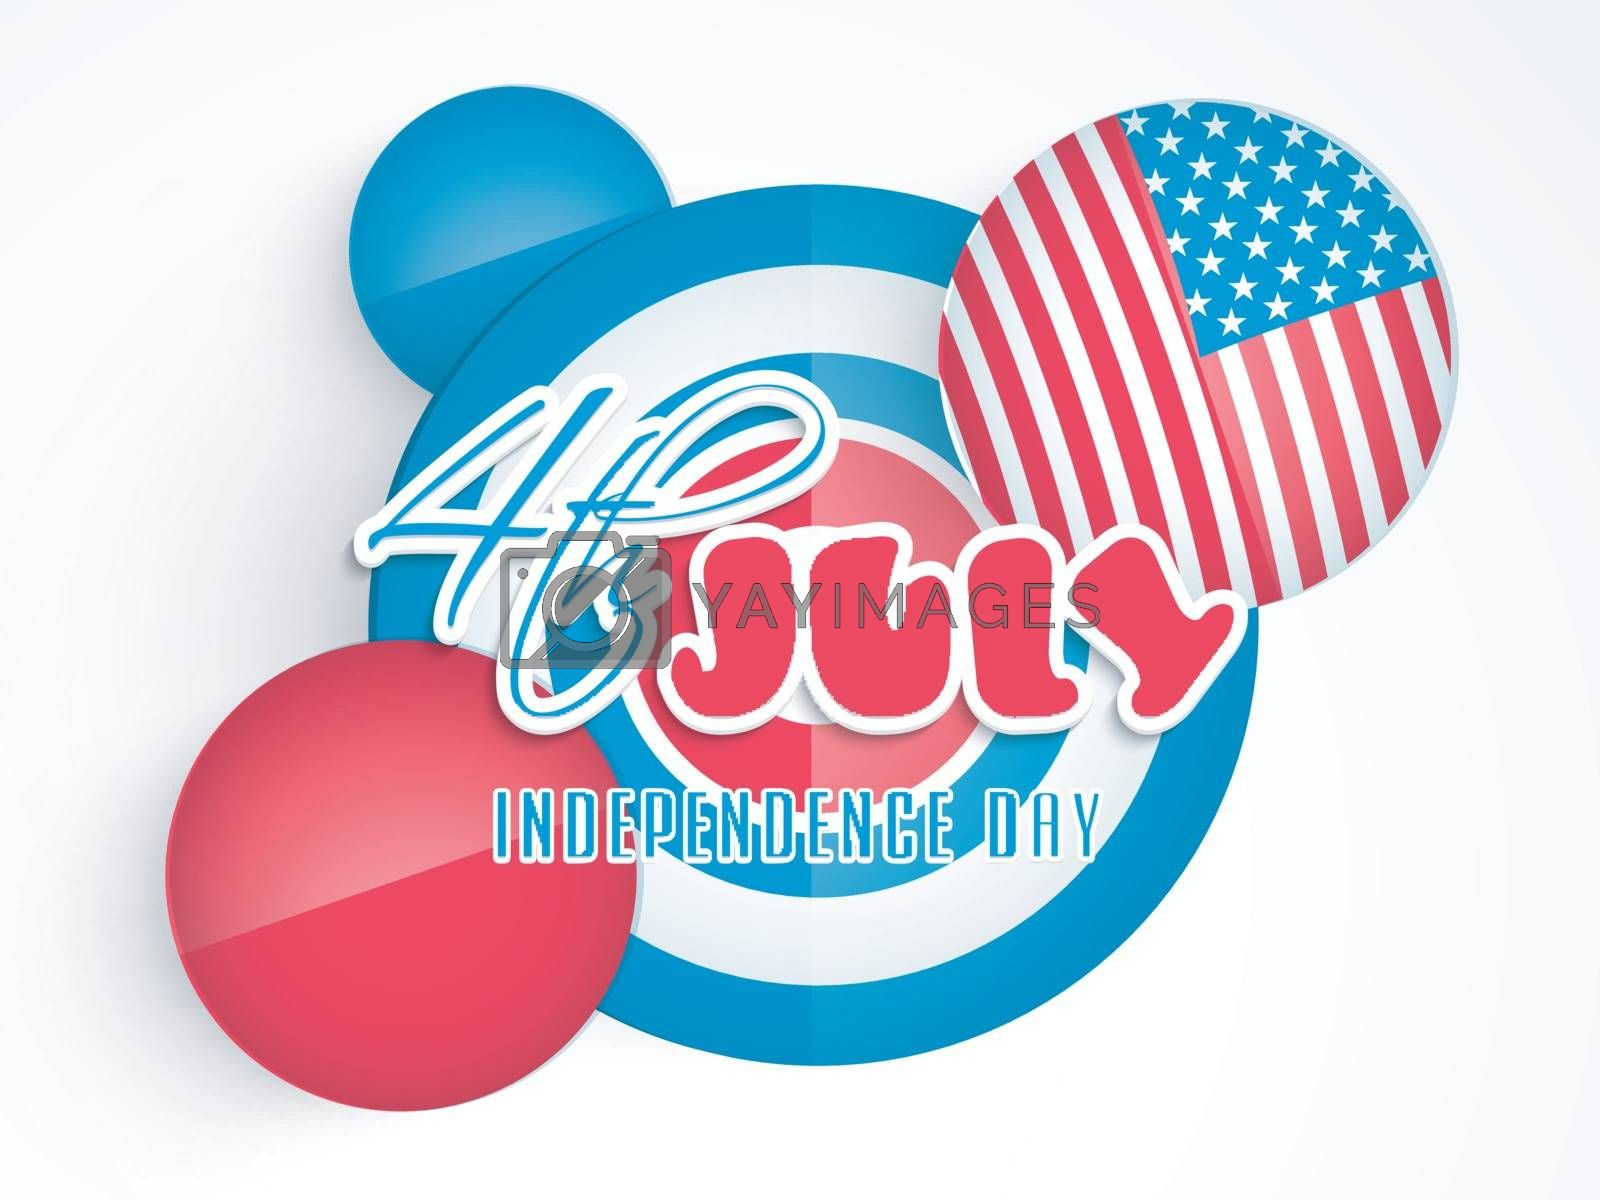 Paper text 4th of July on American Flag colors background for Independence Day celebration.